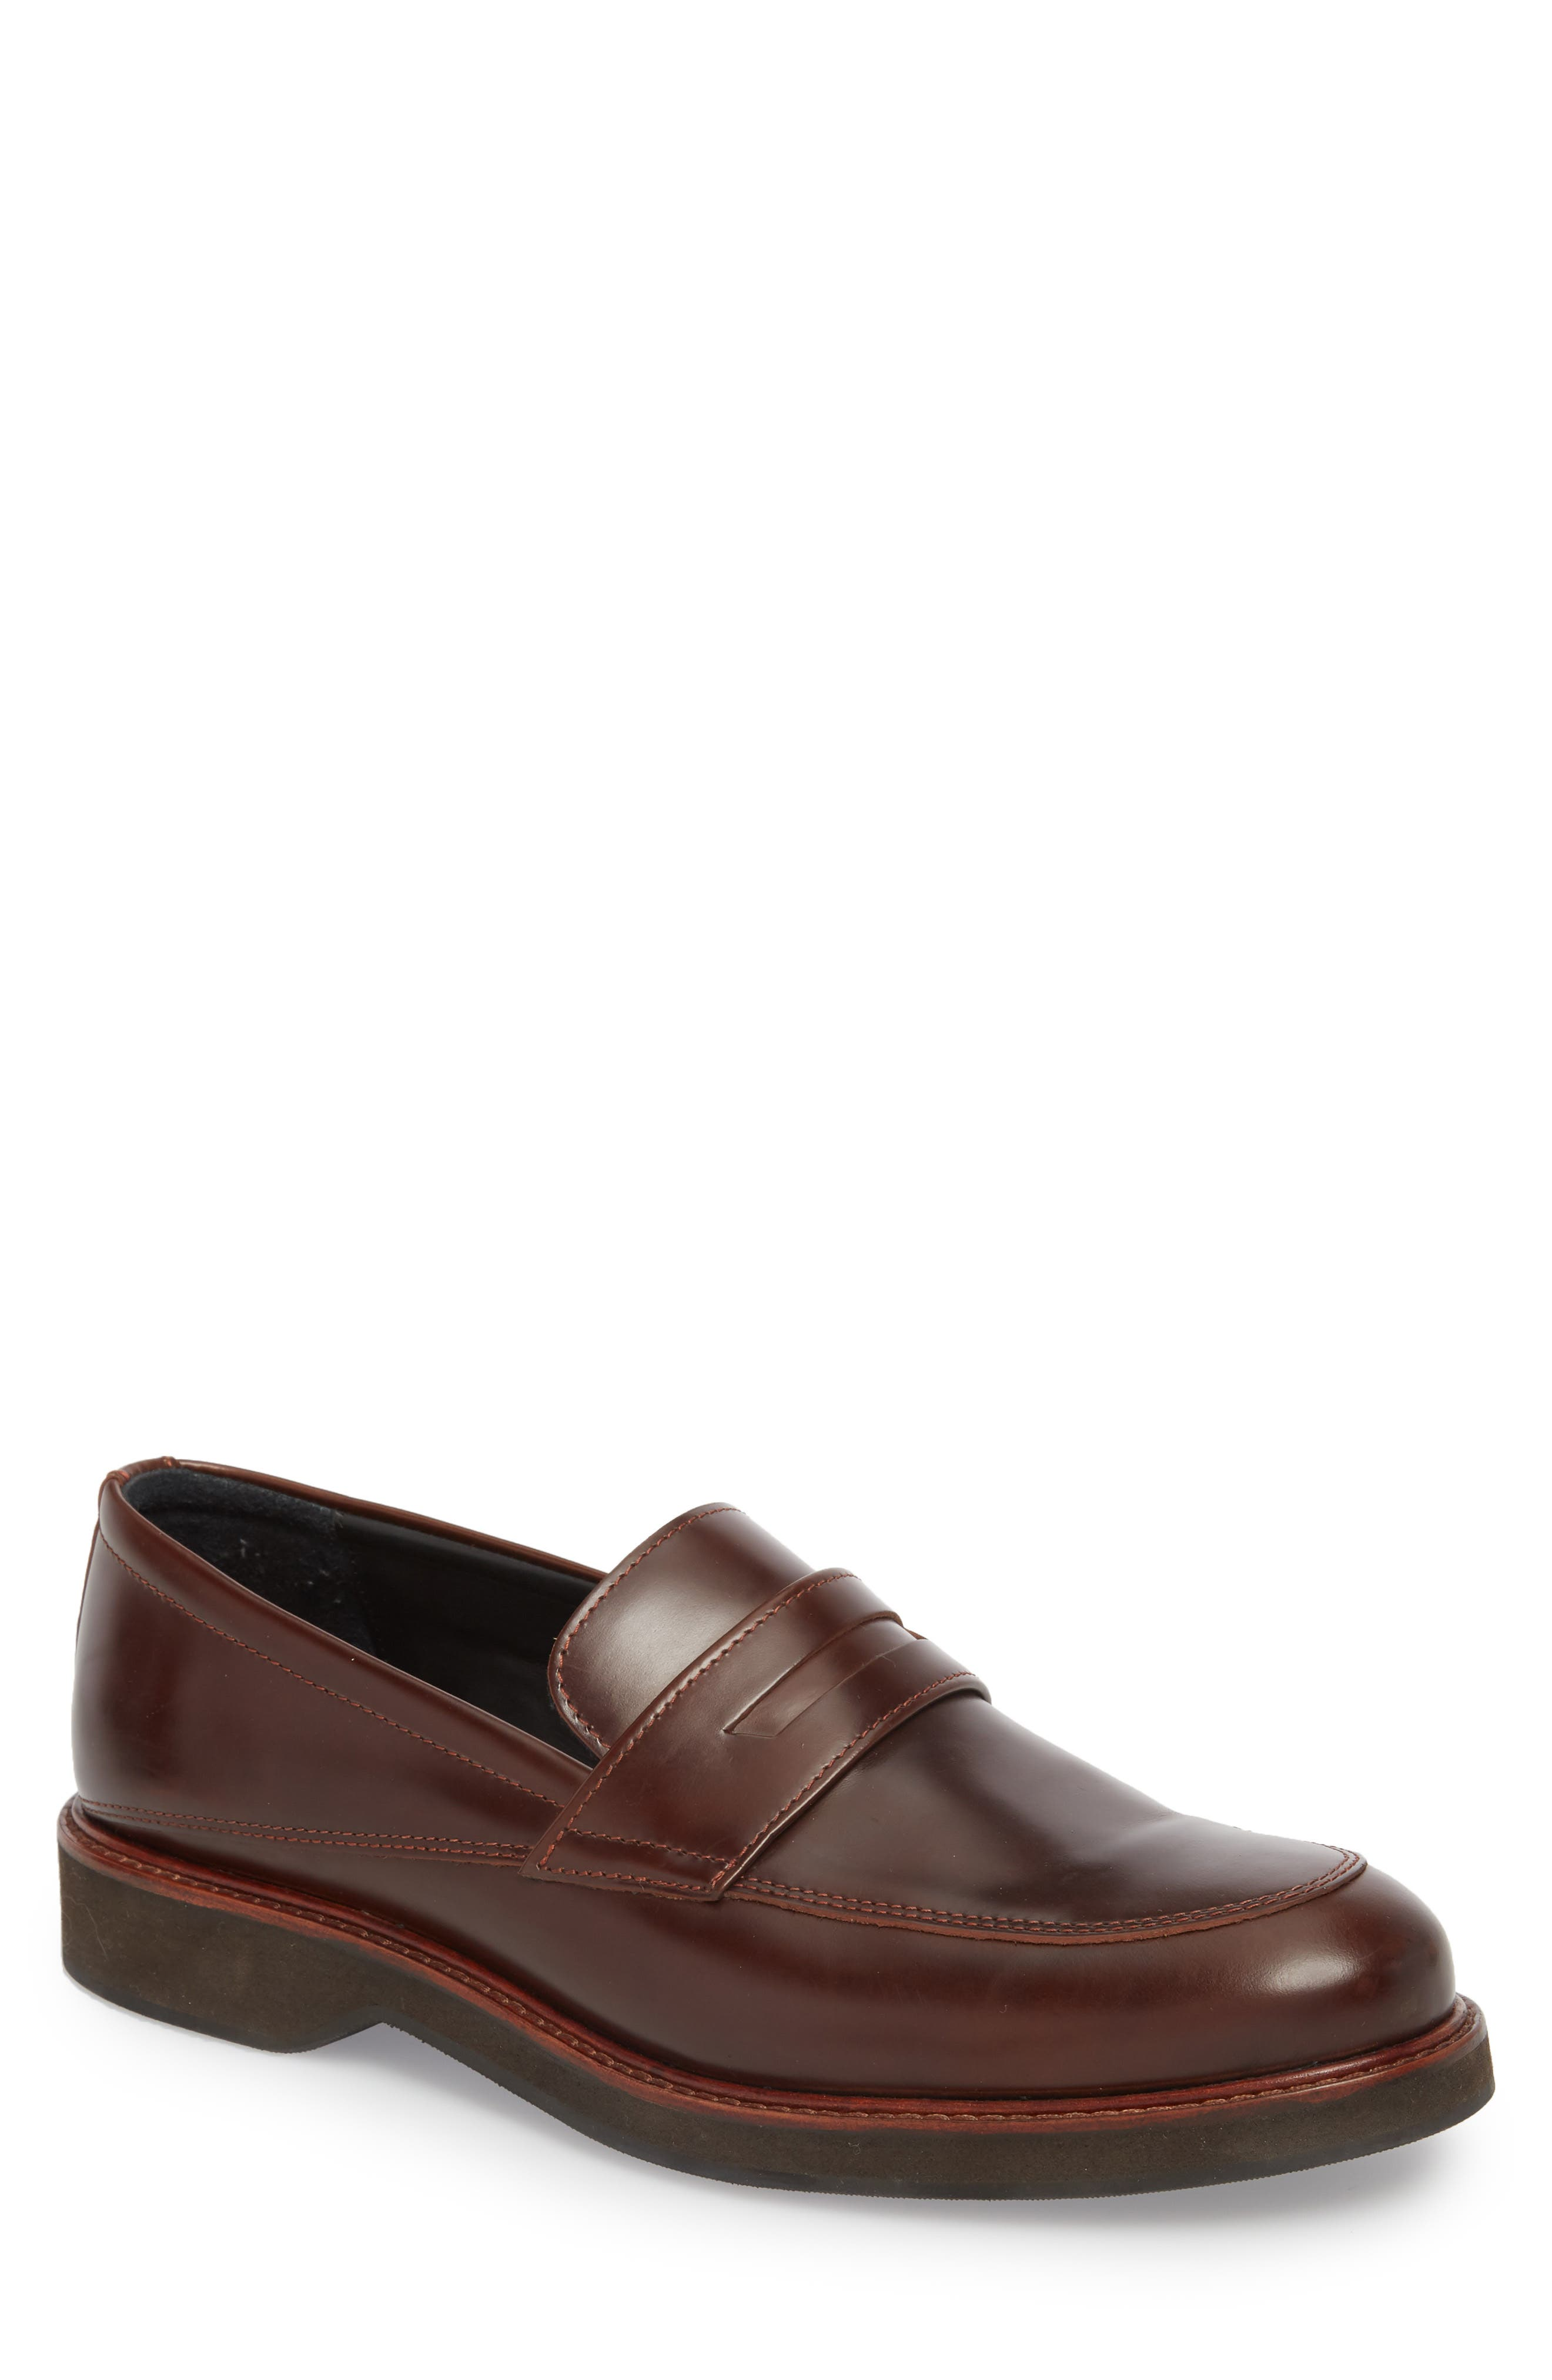 'Marcos' Loafer,                             Main thumbnail 1, color,                             Multi Brown/ Brown